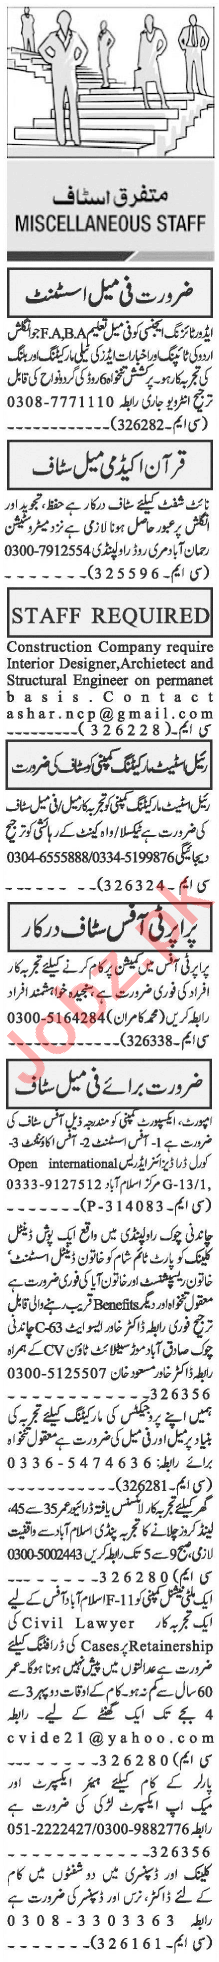 Female Assistant & Quran Teacher Jobs 2021 in Islamabad